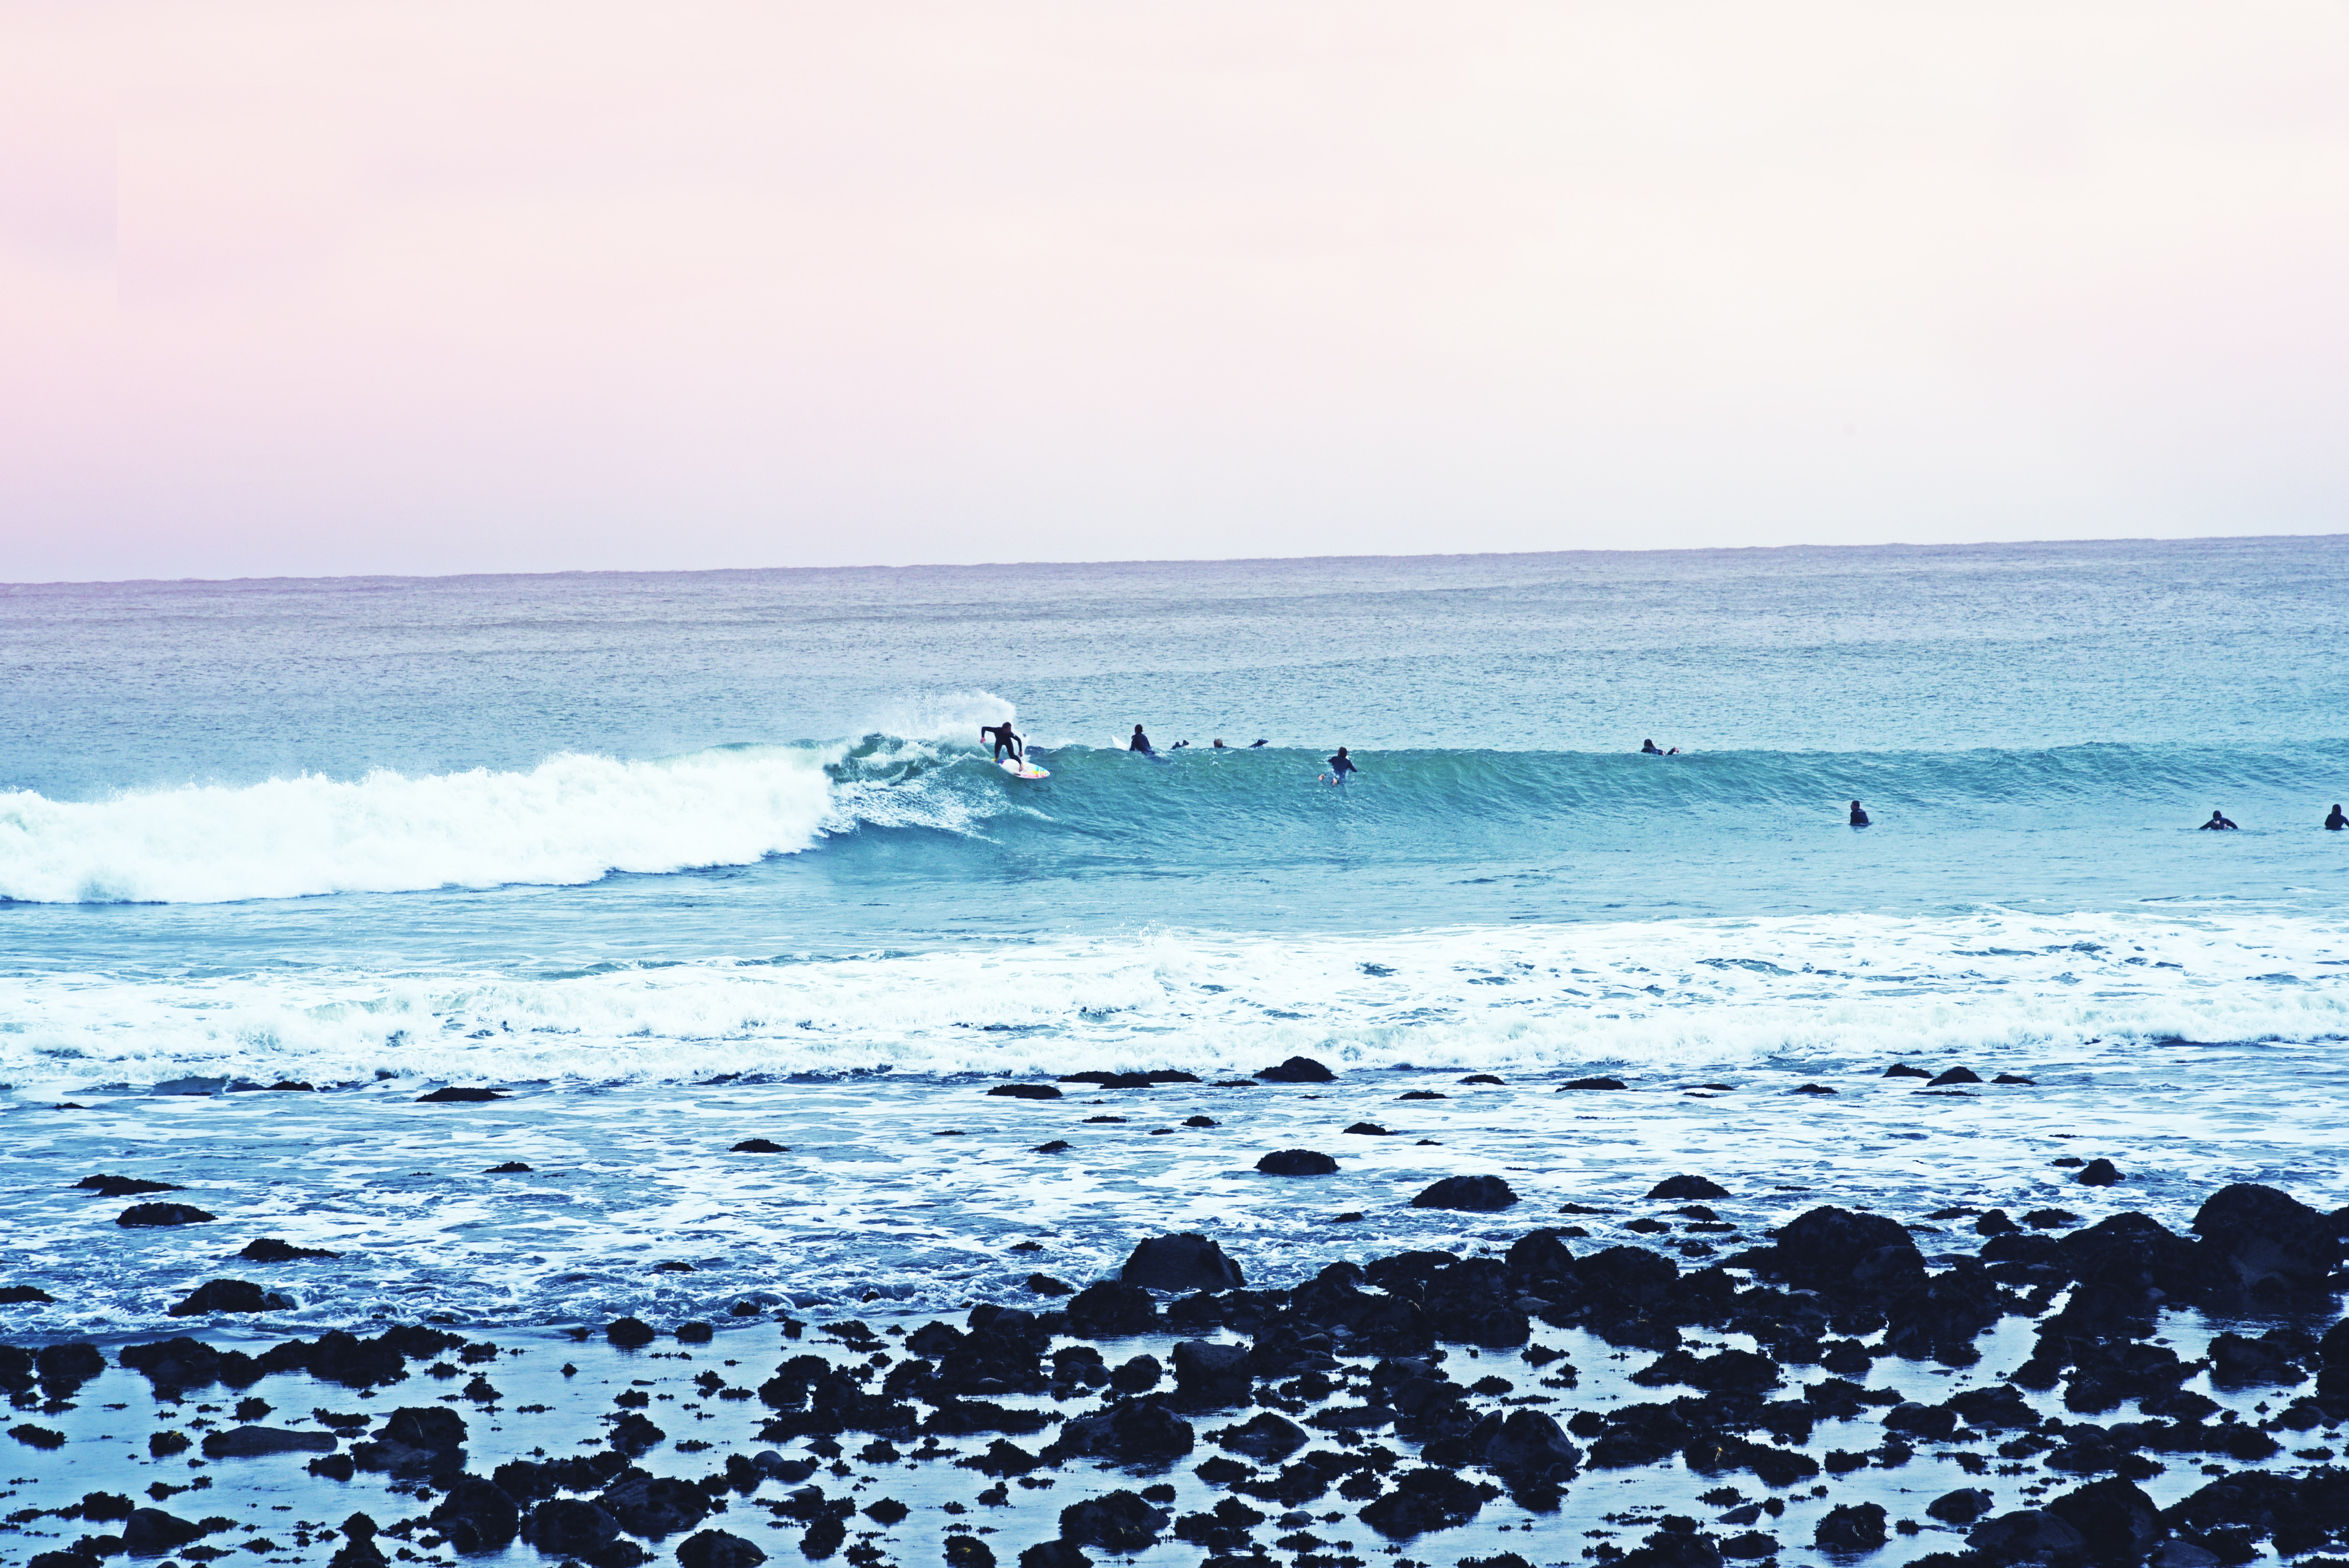 A pale shot of a surfer riding a wave with silhouettes of other people swimming in the sea nearby